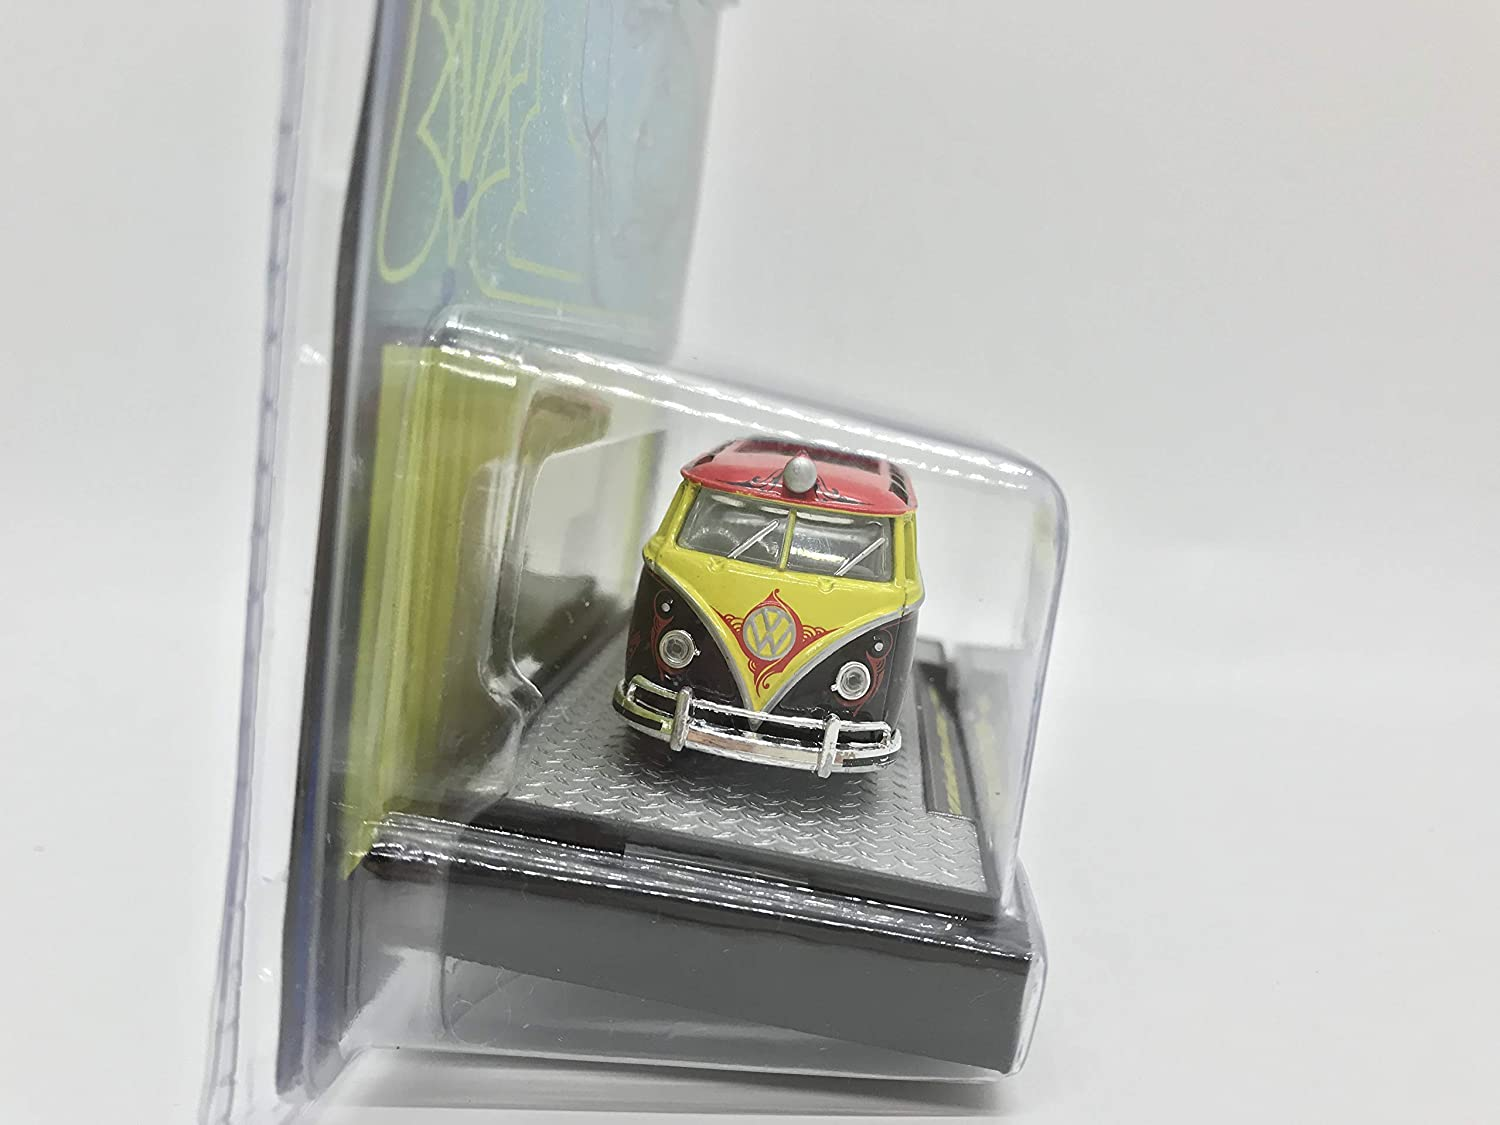 M2 Machines by M2 Collectible Auto-Dreams Crazy Painter Tom Kelly Edition 1959 VW Microbus Deluxe USA Model 1:64 Scale WMTS05 16-06 Black//Red//Yellow Details Like NO Other!